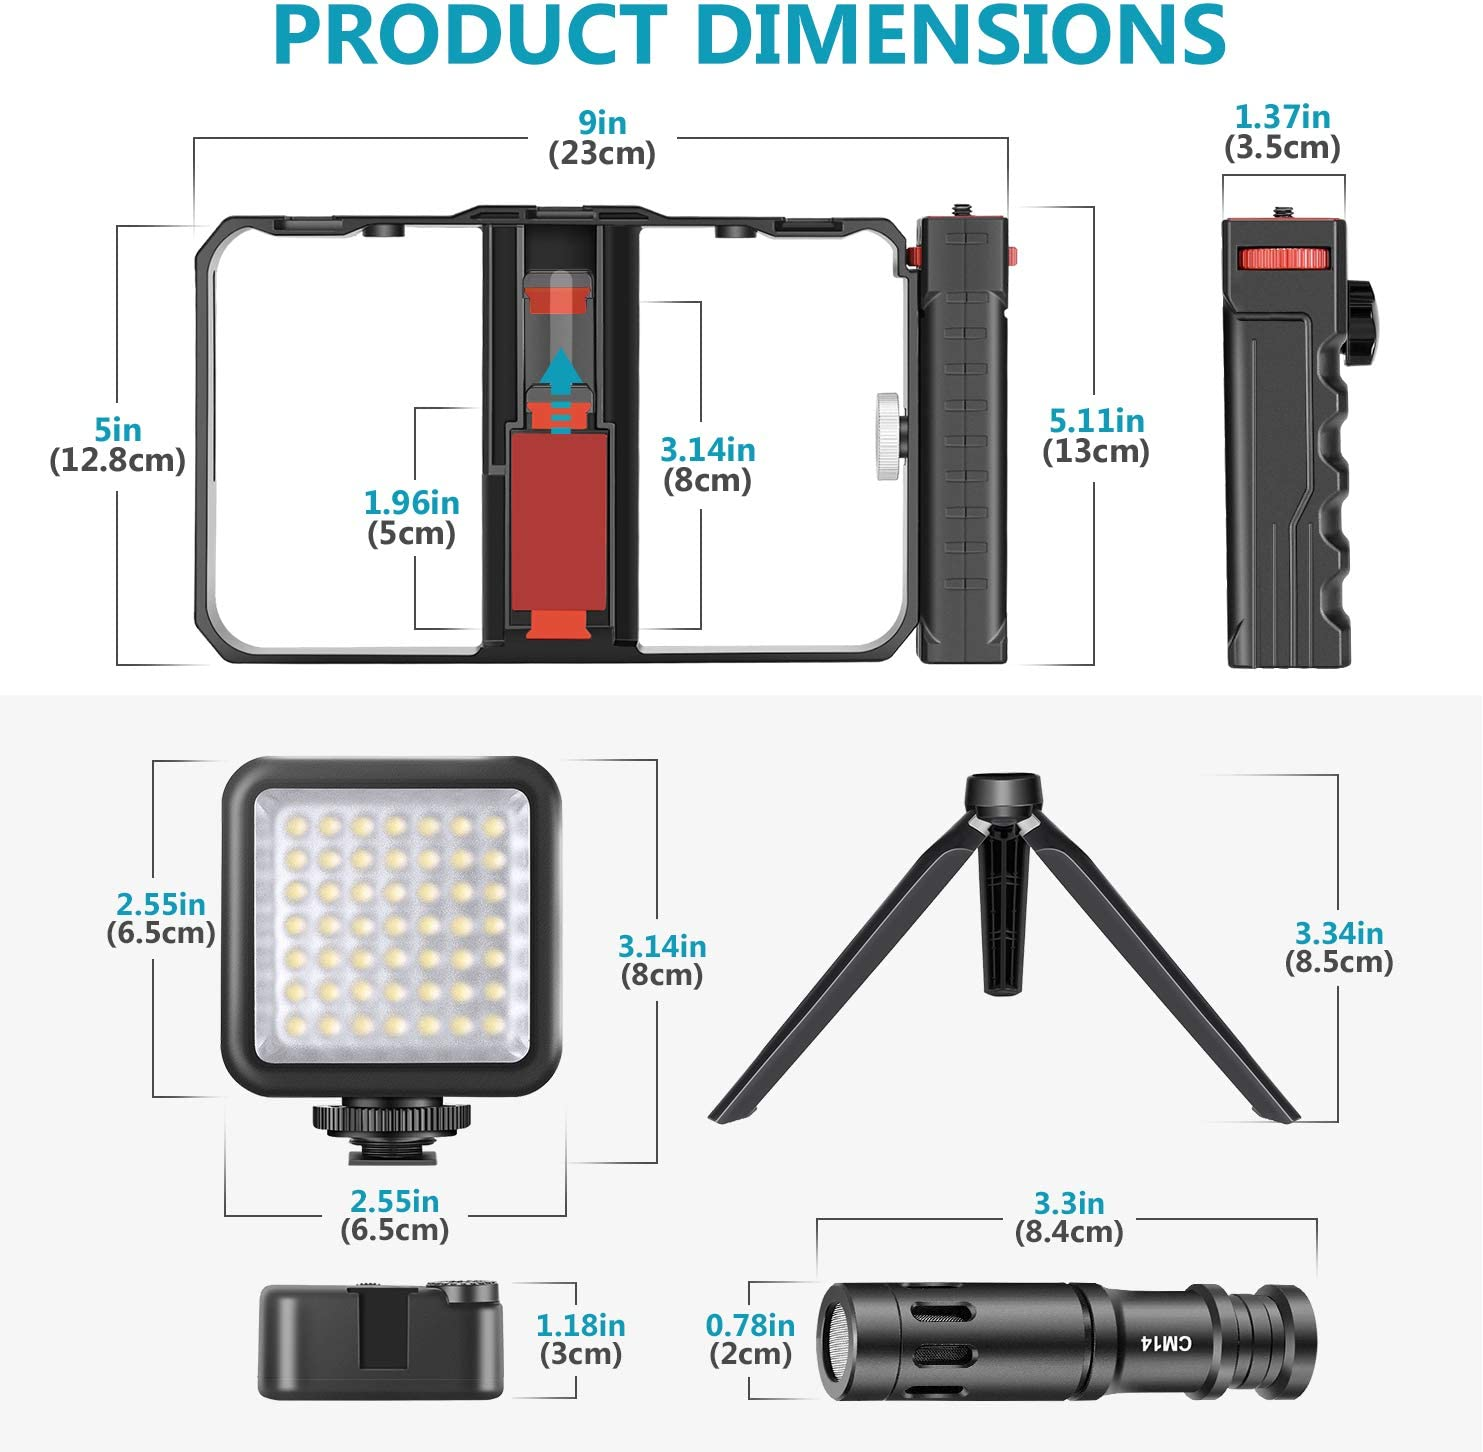 LED Video Light Mini Tripod Compatible with iPhone Samsung and Most Phones for Filmmaking Videomakers Neewer Smartphone Video Rig Kit Smartphone Video Grip Stabilizer with Microphone